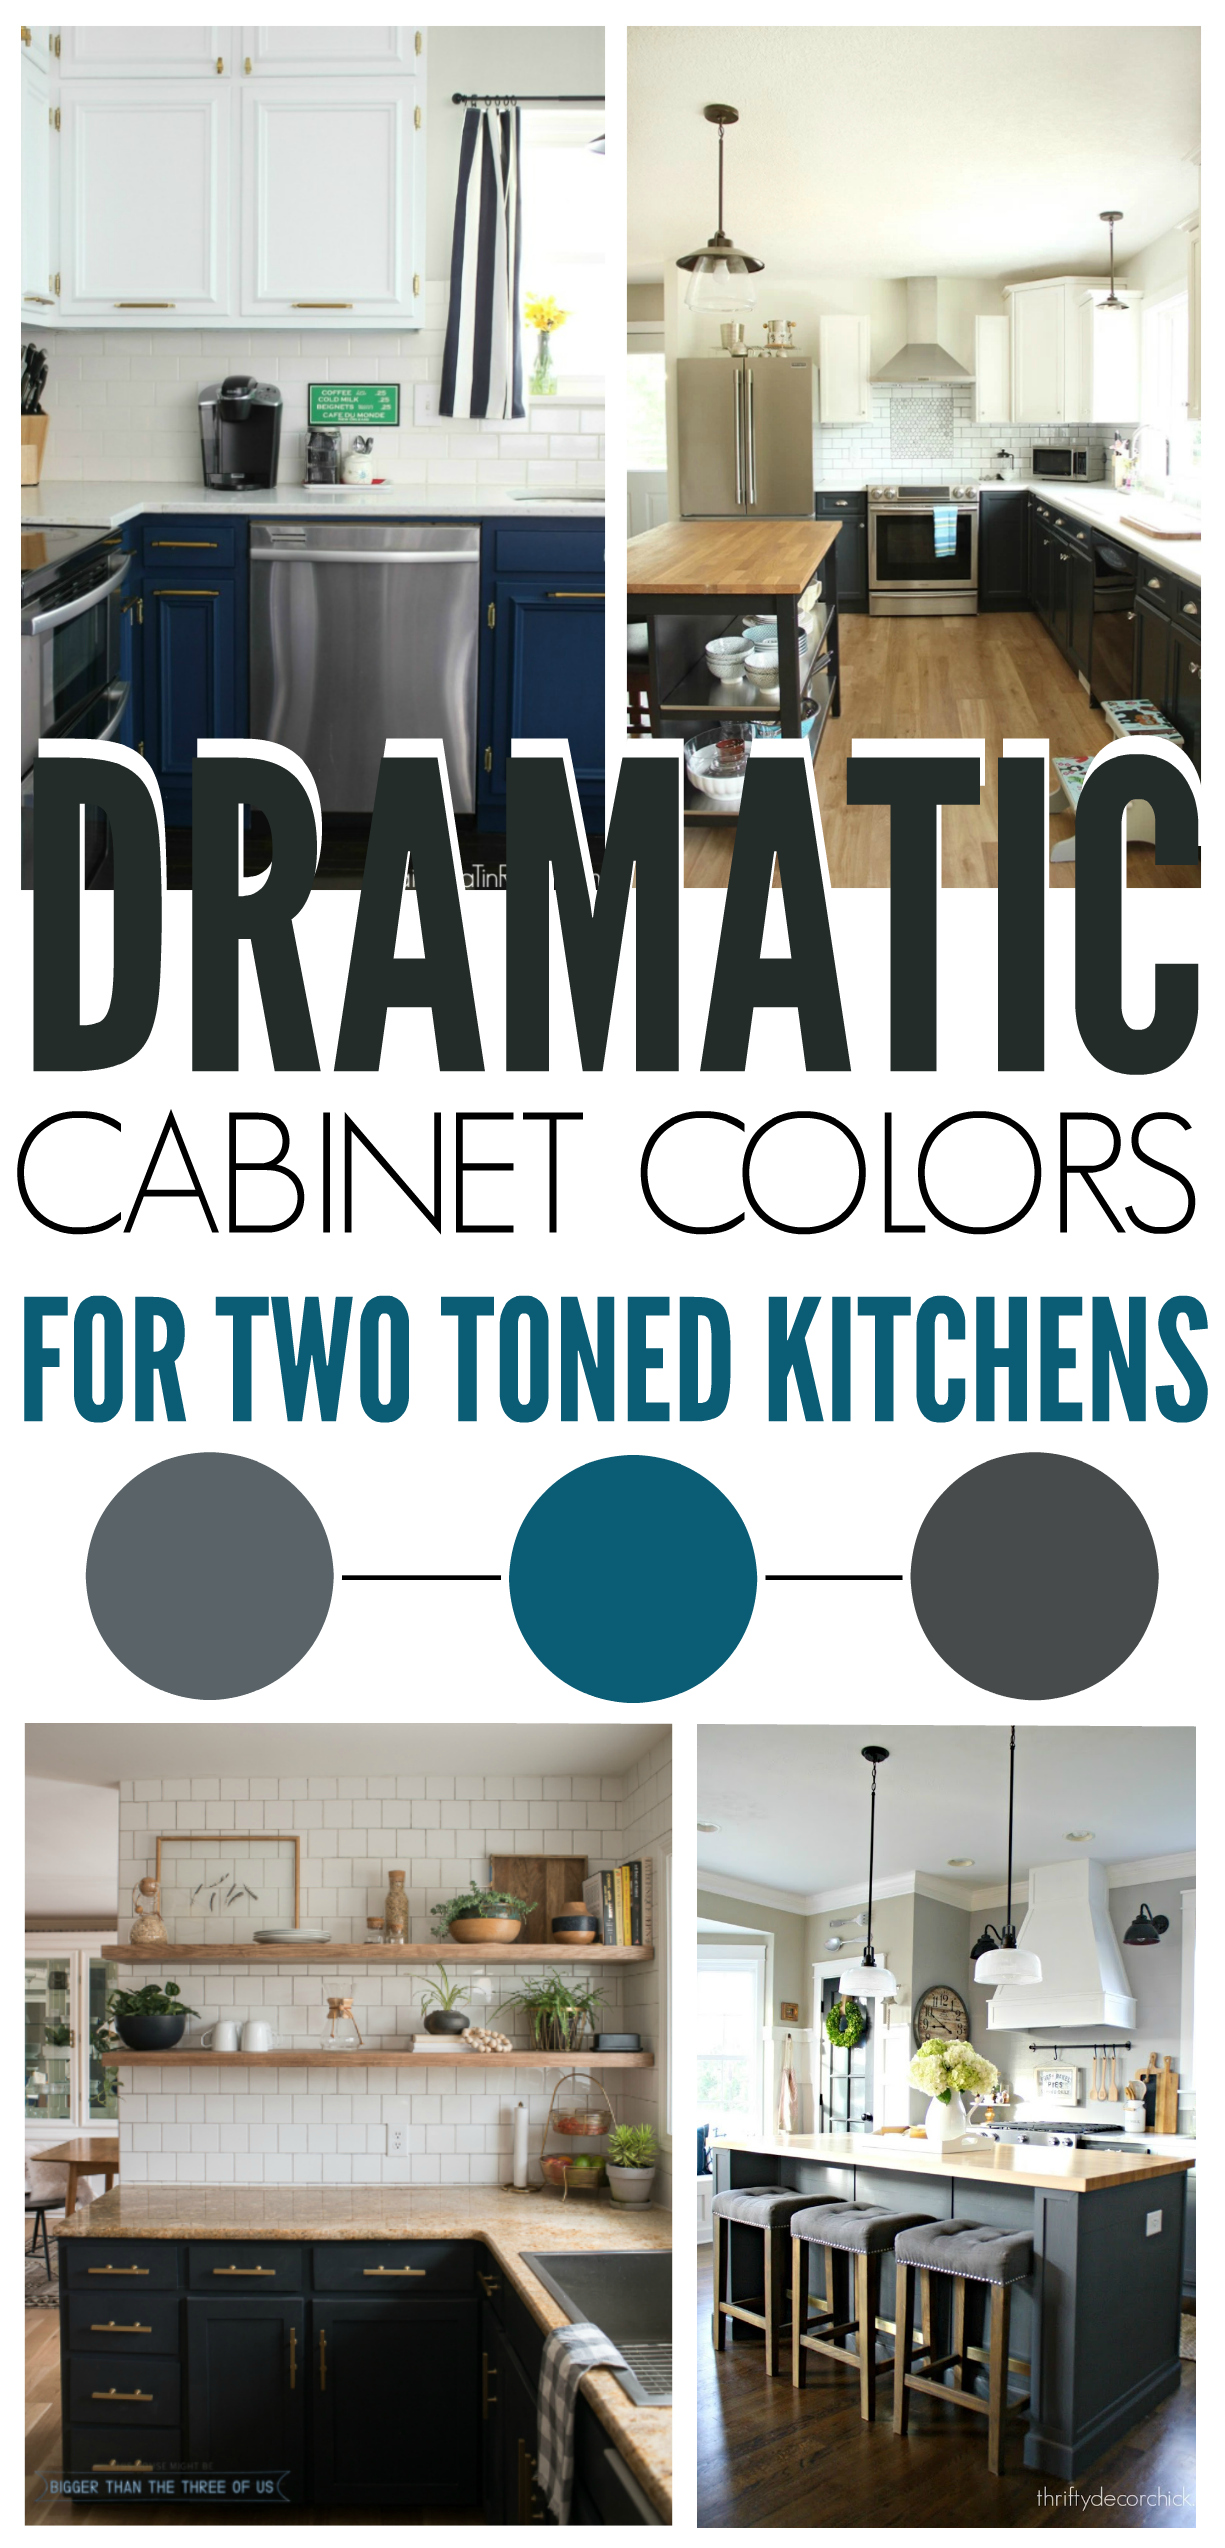 the-best-cabinet-colors-for-modern-two-toned-kitchens